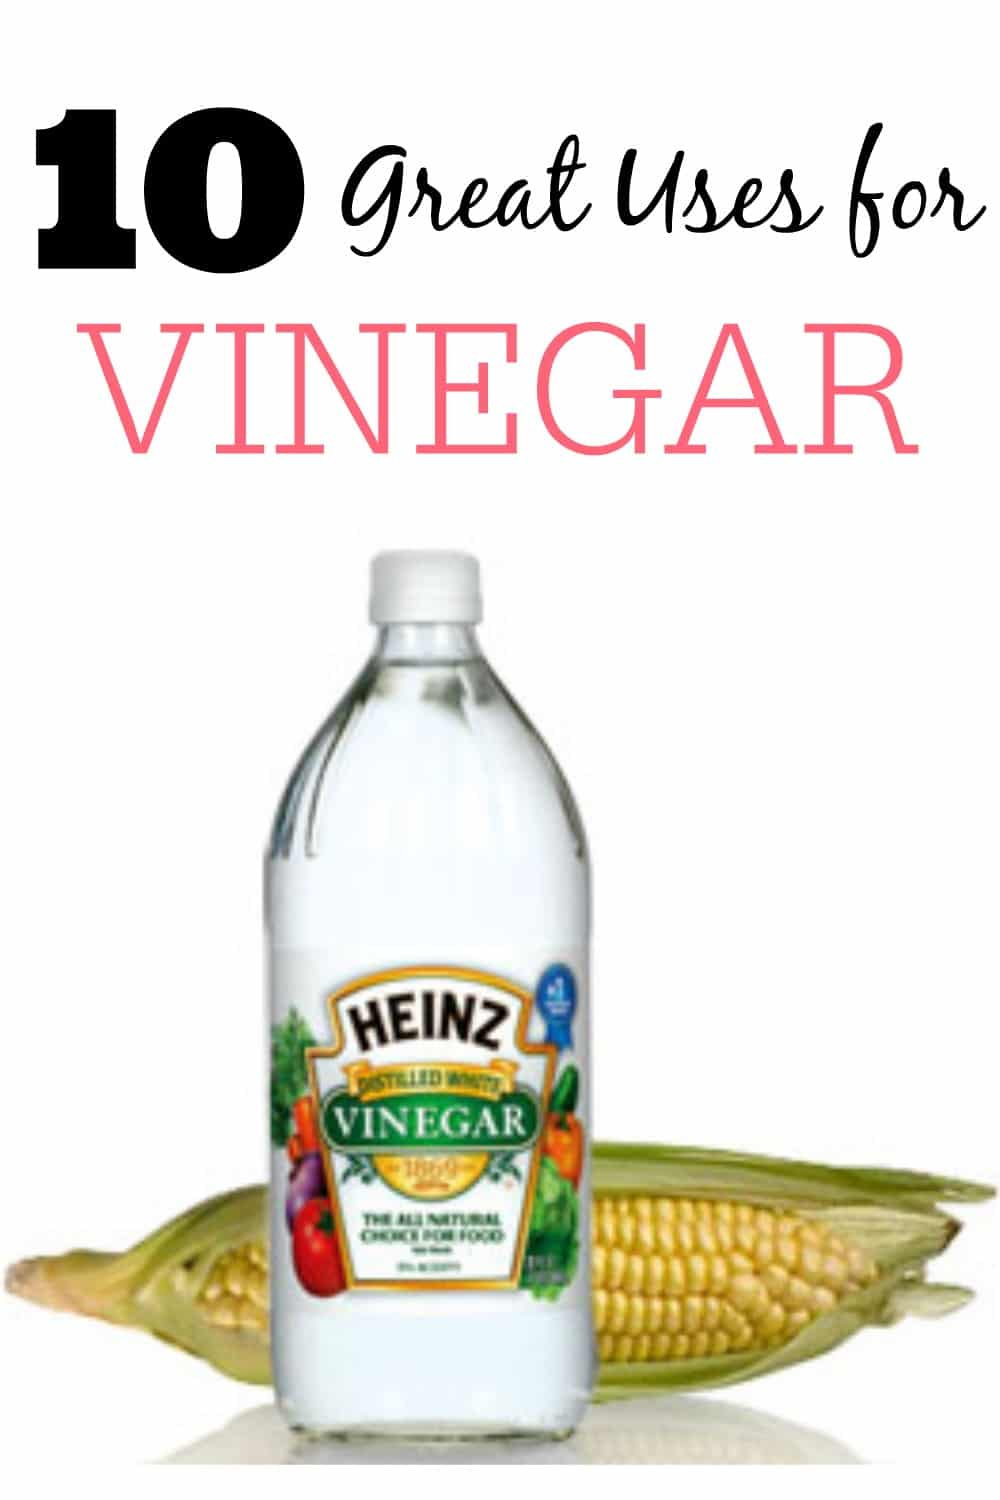 10 Great Uses for Vinegar